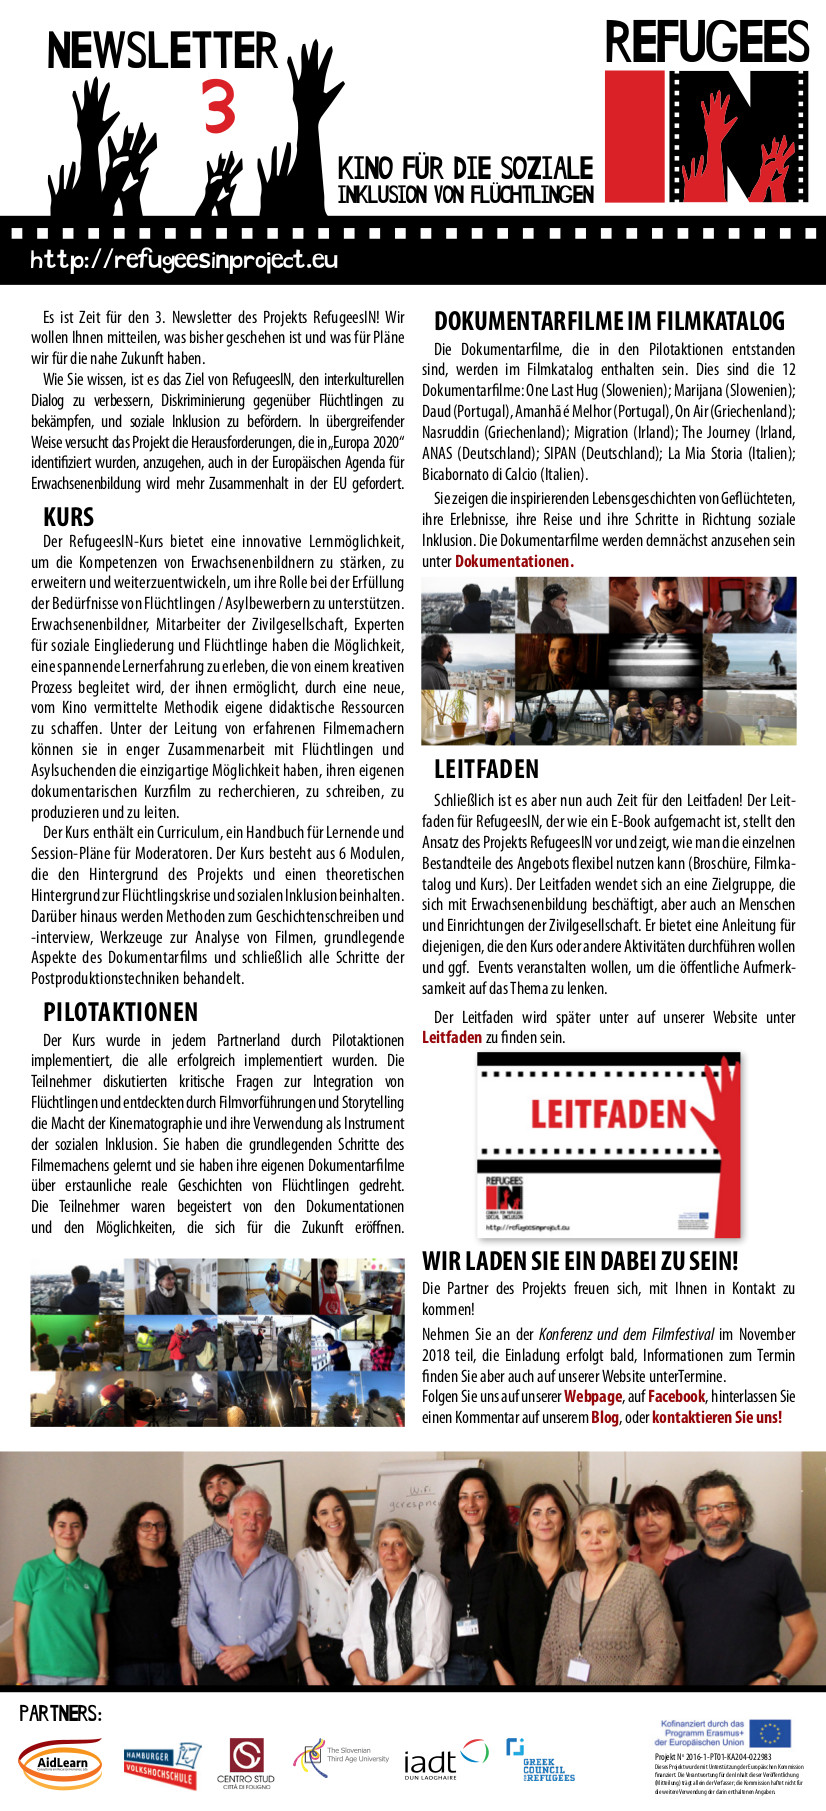 refugeesin newsletter3